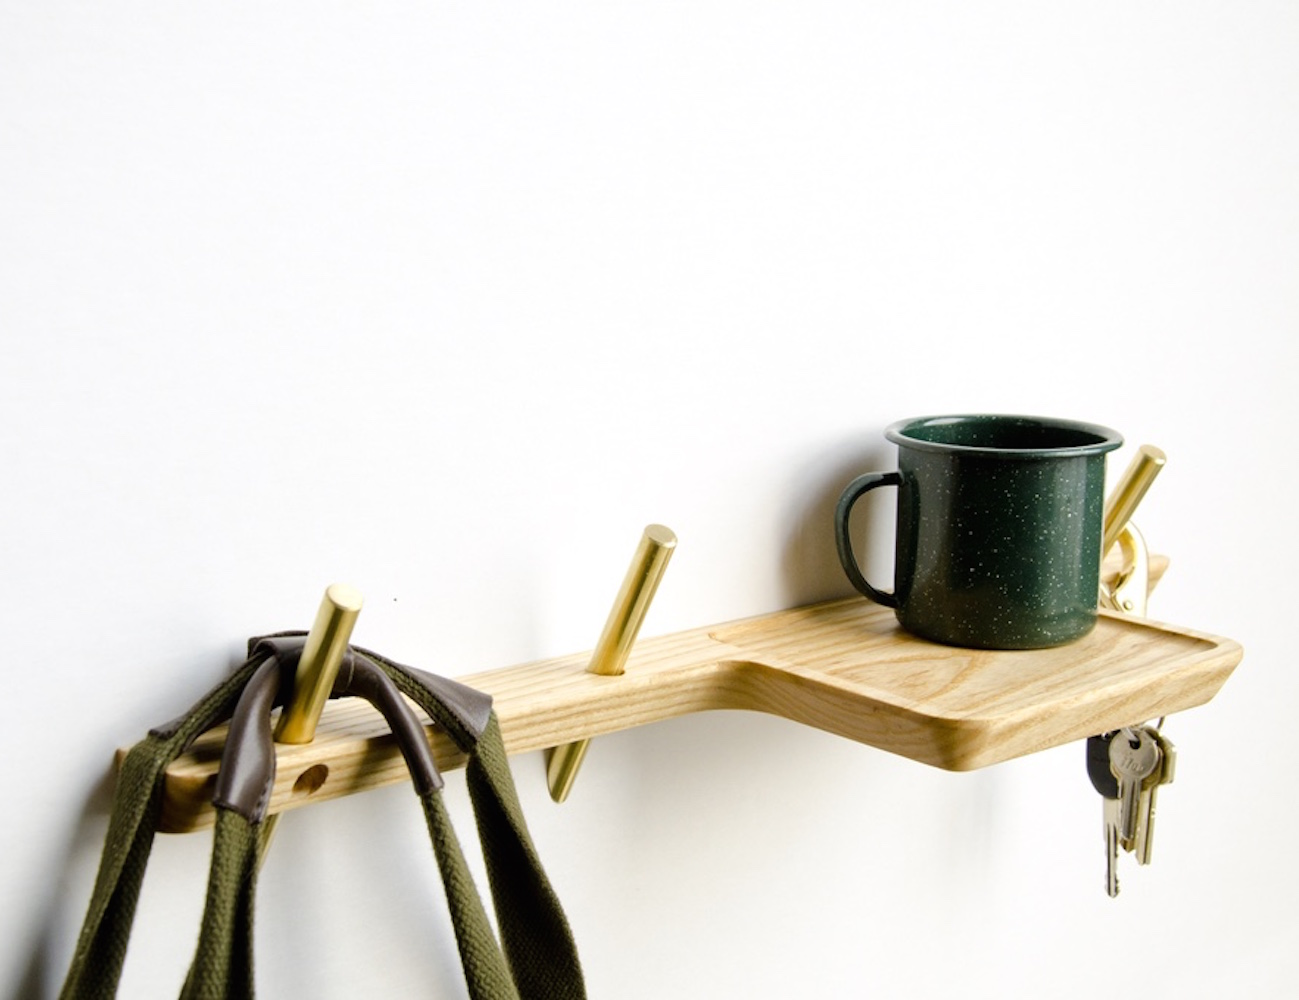 Intersect Valet – A Series of Wall Hooks and Wall Shelf